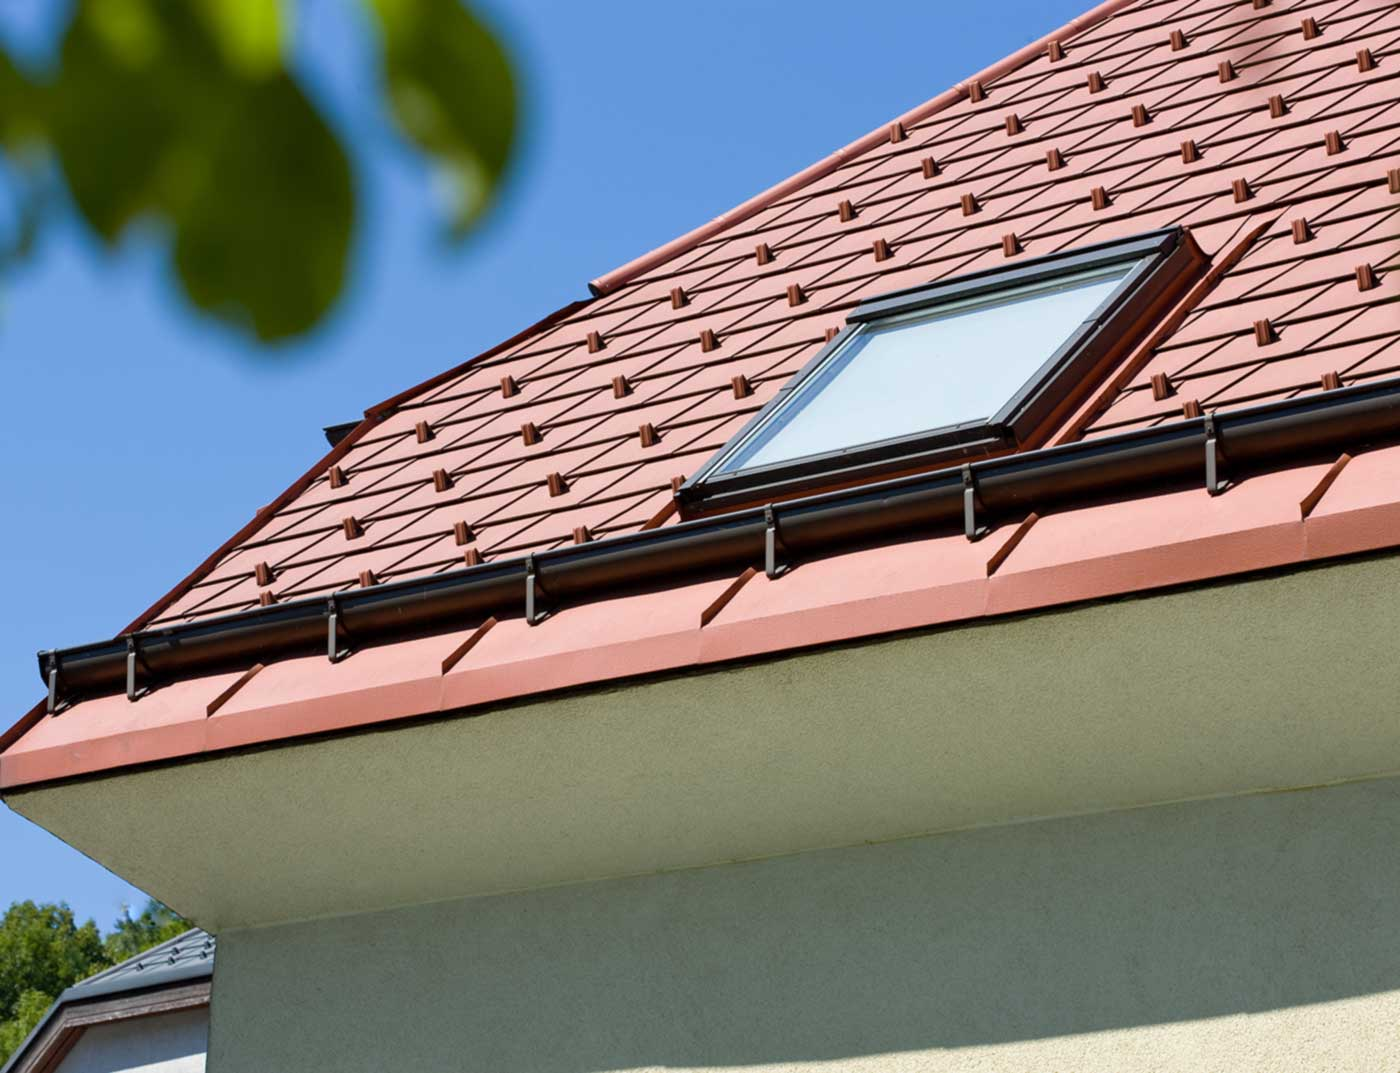 Referenzobjekte PREFA Roof drainage on-roof gutter 01 P.10 brown